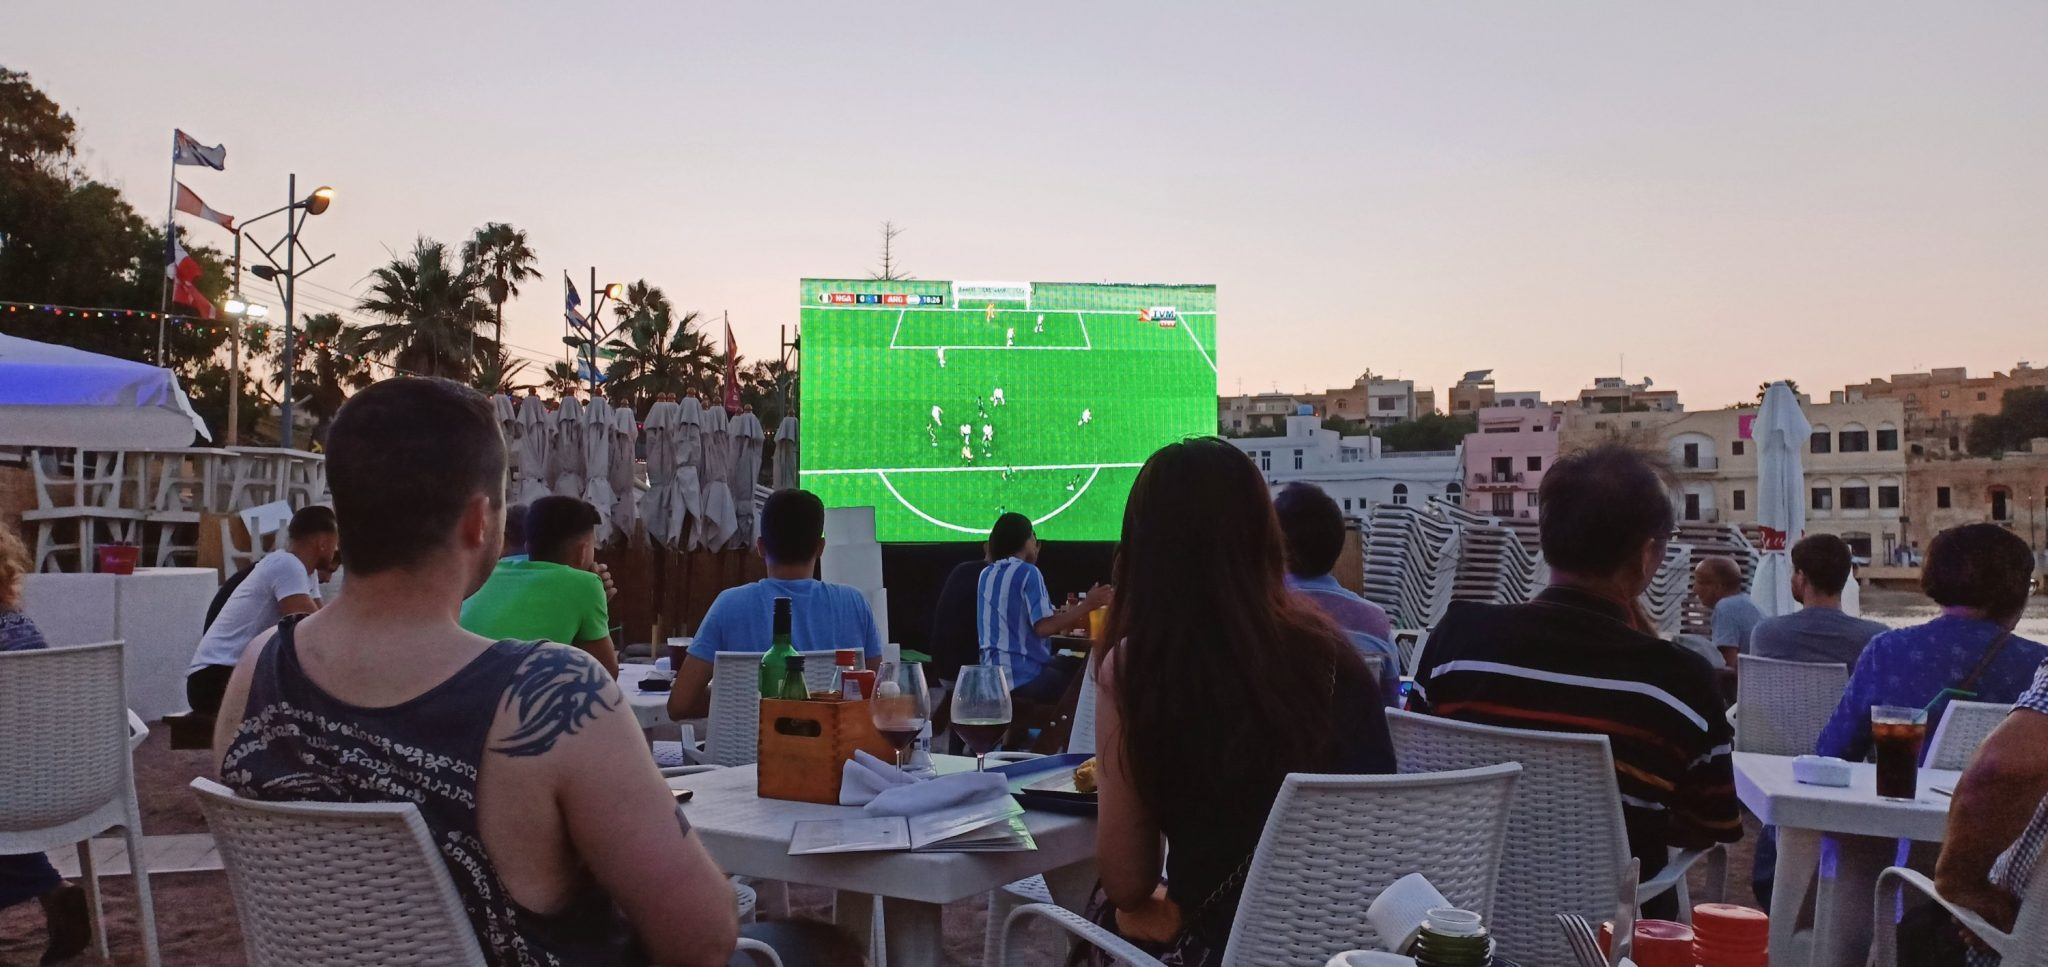 watching football vm outdoors